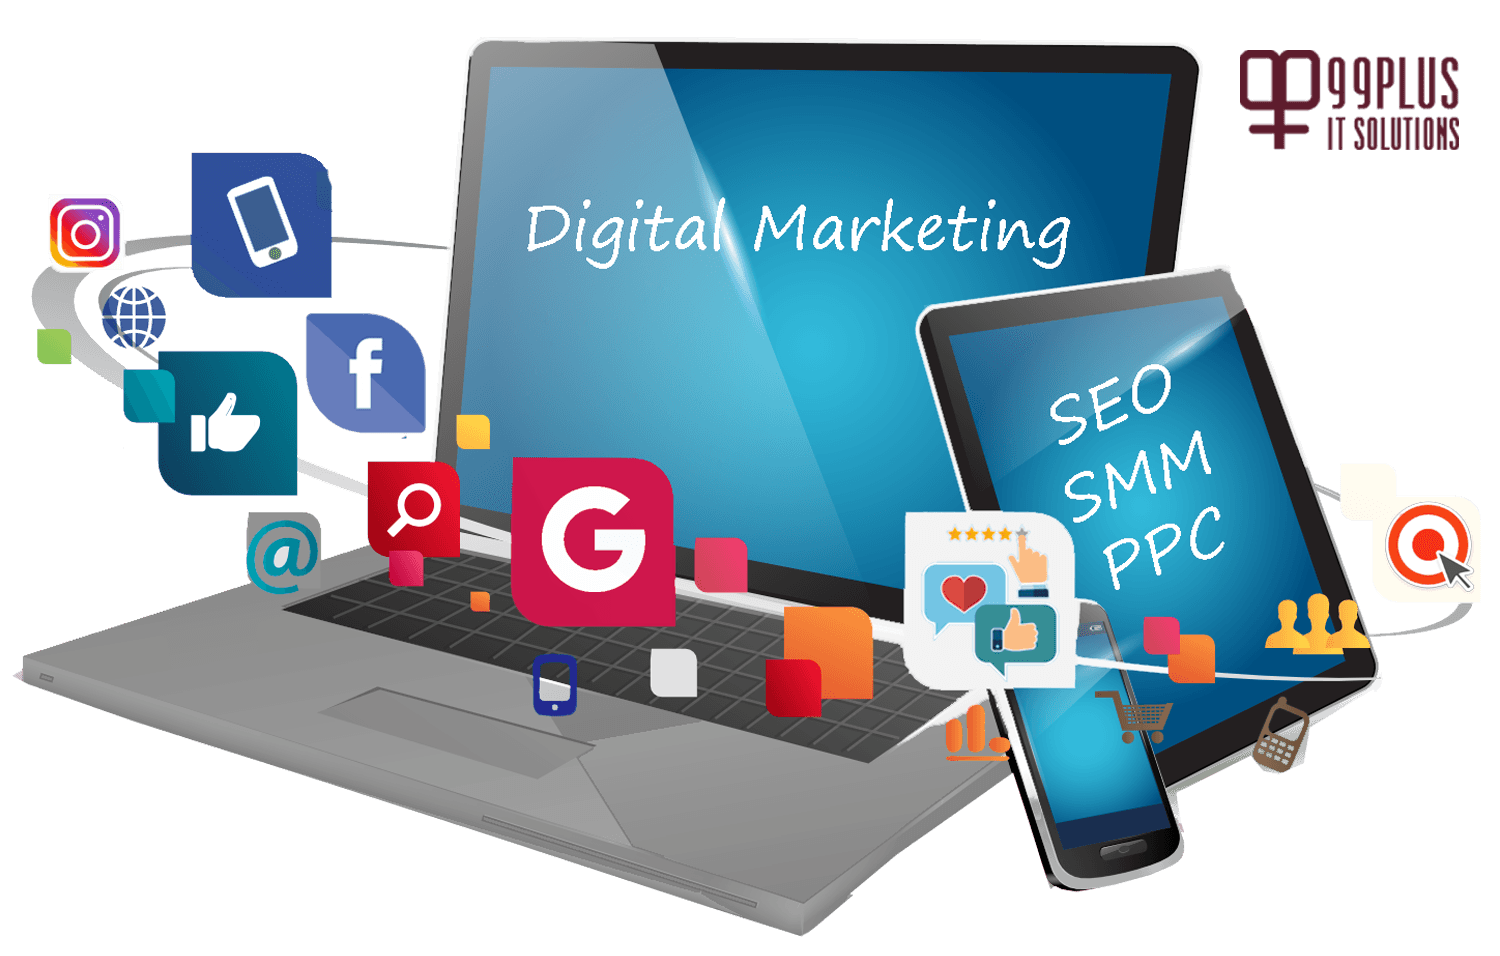 Digital Marketing Company in Los Angeles (LA) USA